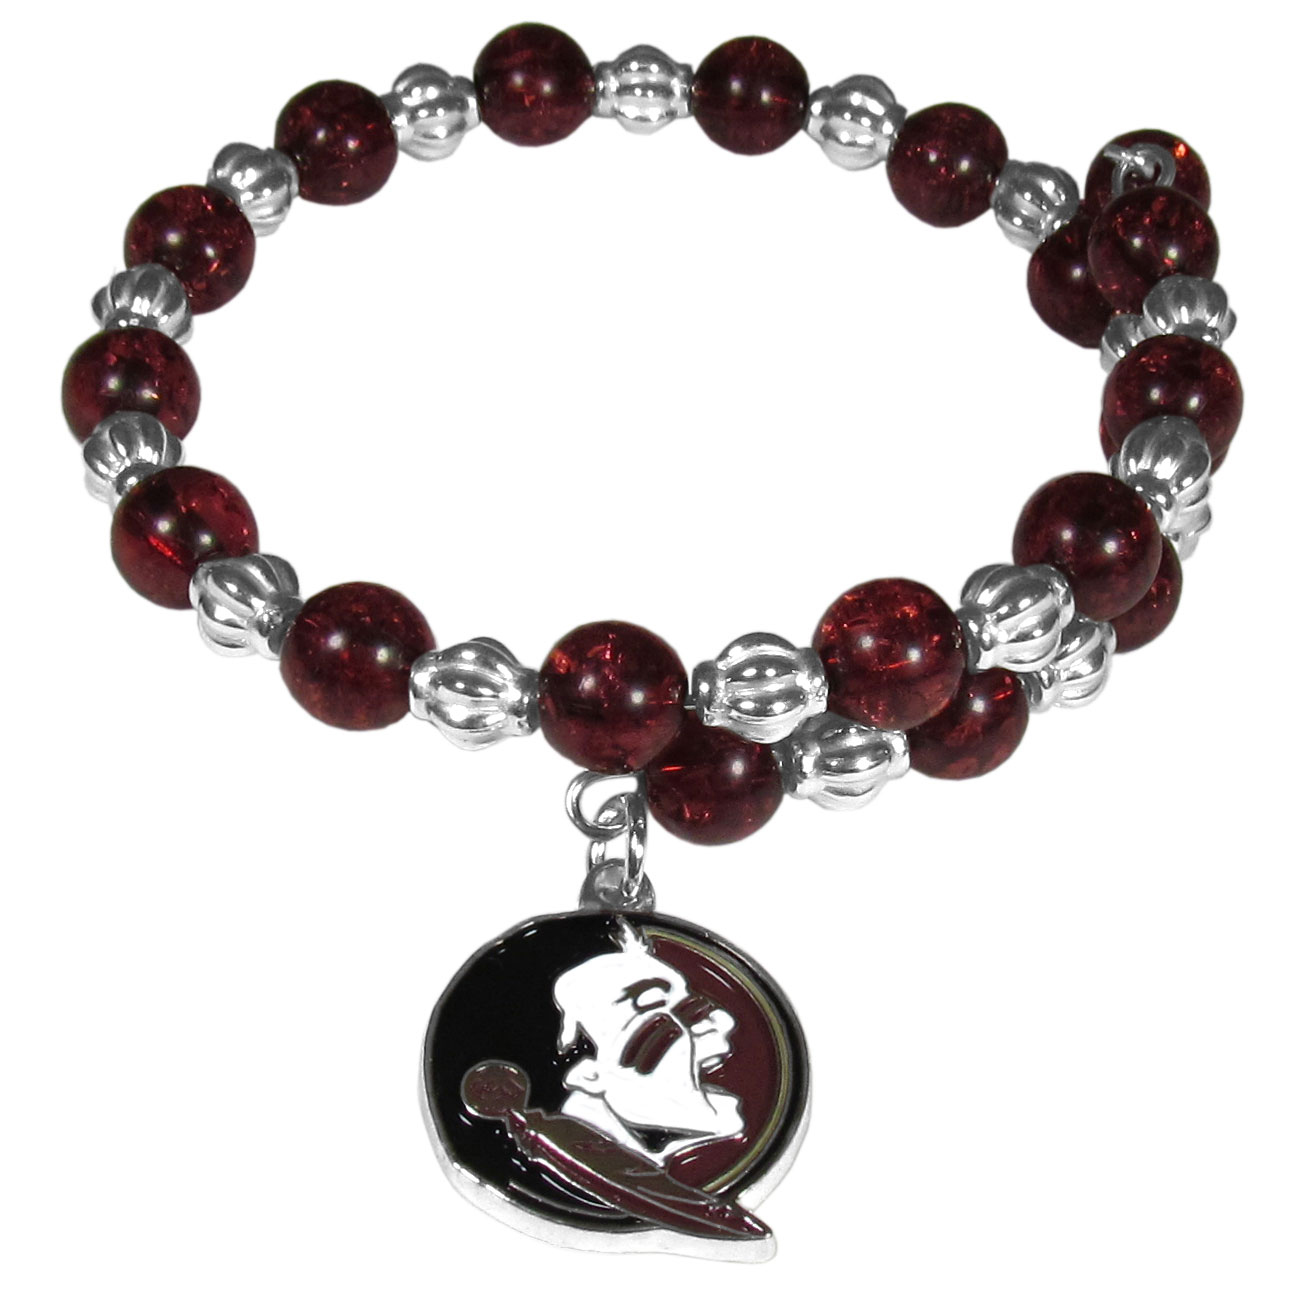 Florida St. Seminoles Bead Memory Wire Bracelet - Our Florida St. Seminoles memory wire bead bracelet is trendy way to show off your love of the game. The double wrap bracelet is completely covered in 7.5 mm crystals that are broken up with silvertoned beads creating a designer look with a sporty twist. The bracelet features a fully cast, metal team charm that has expertly enameled team colors. This fashion jewelry piece is a must-have for the die-hard fan that chic look that can dress up any outfit.